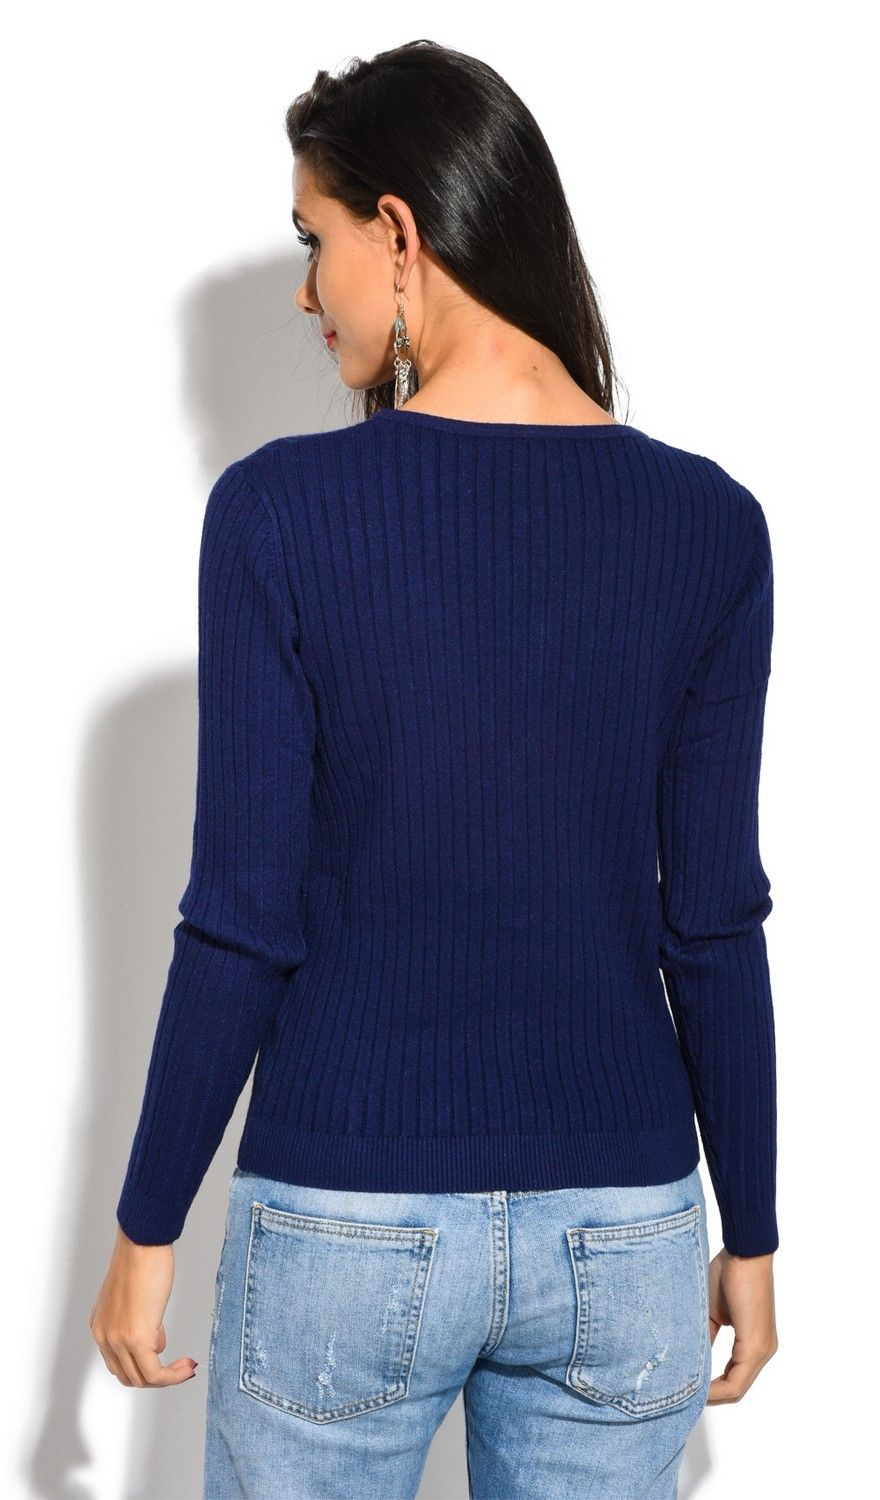 Assuili V-neck Long Sleeve Ribbed Cardigan in Navy